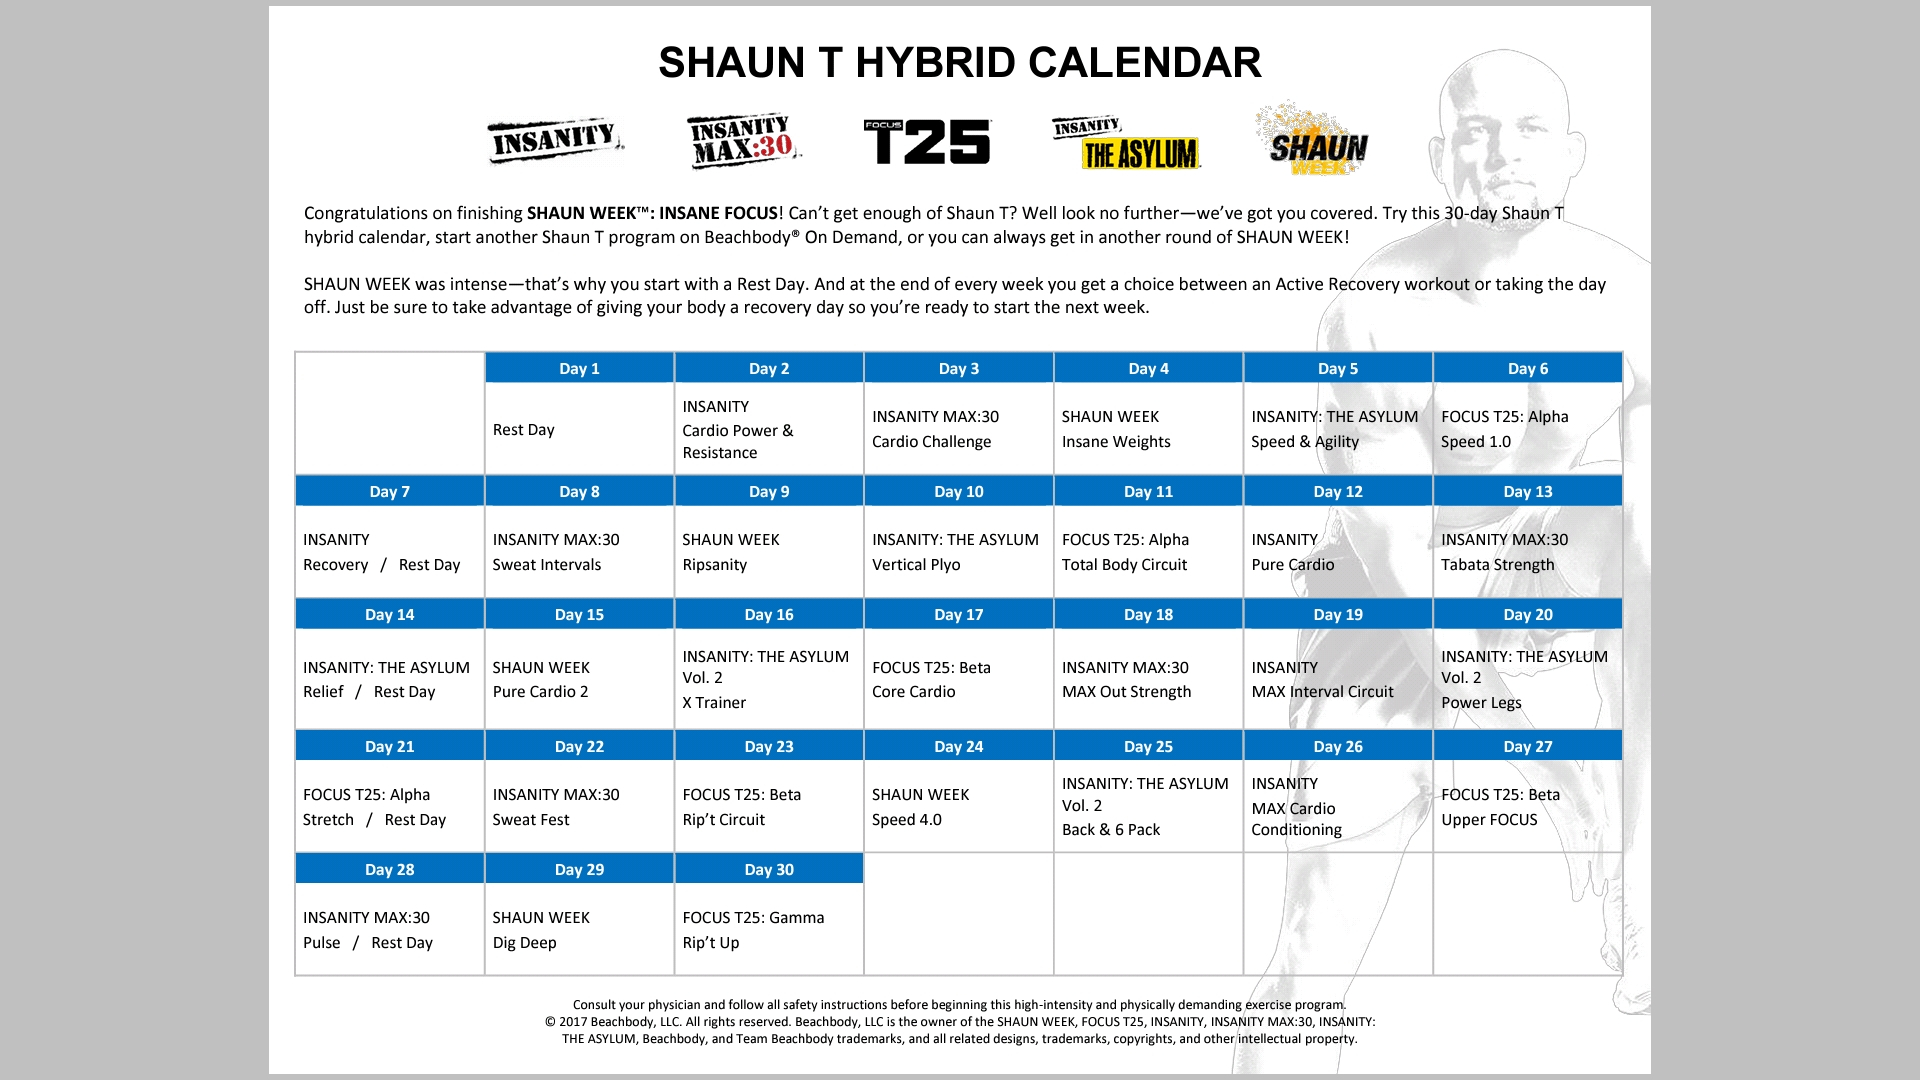 Shaun T Hip Hop Abs Schedule  Calendar Inspiration Design regarding Hip Hop Abs Calendar